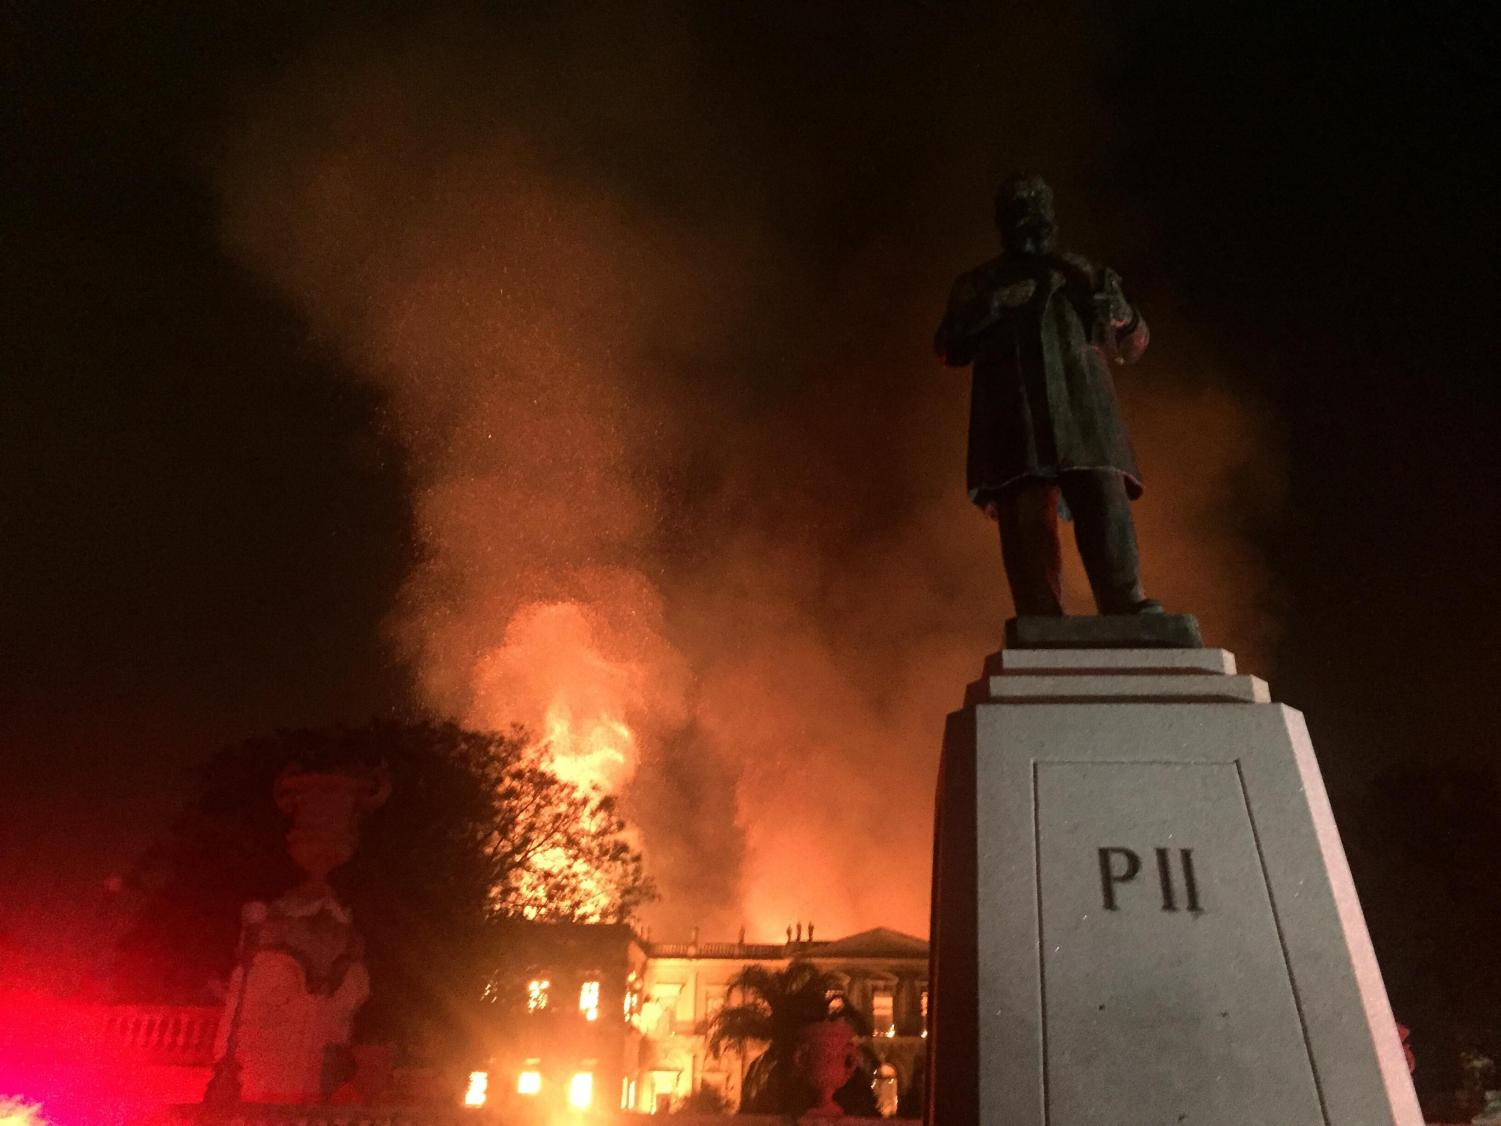 Brazil's National Museum in Rio de Janeiro and many historical artifacts being incinerated in the September fire. Why has there not been nearly the same amount of outrage and donations from celebrities and billionaires around the world compared with the recent Notre Dame tragedy?